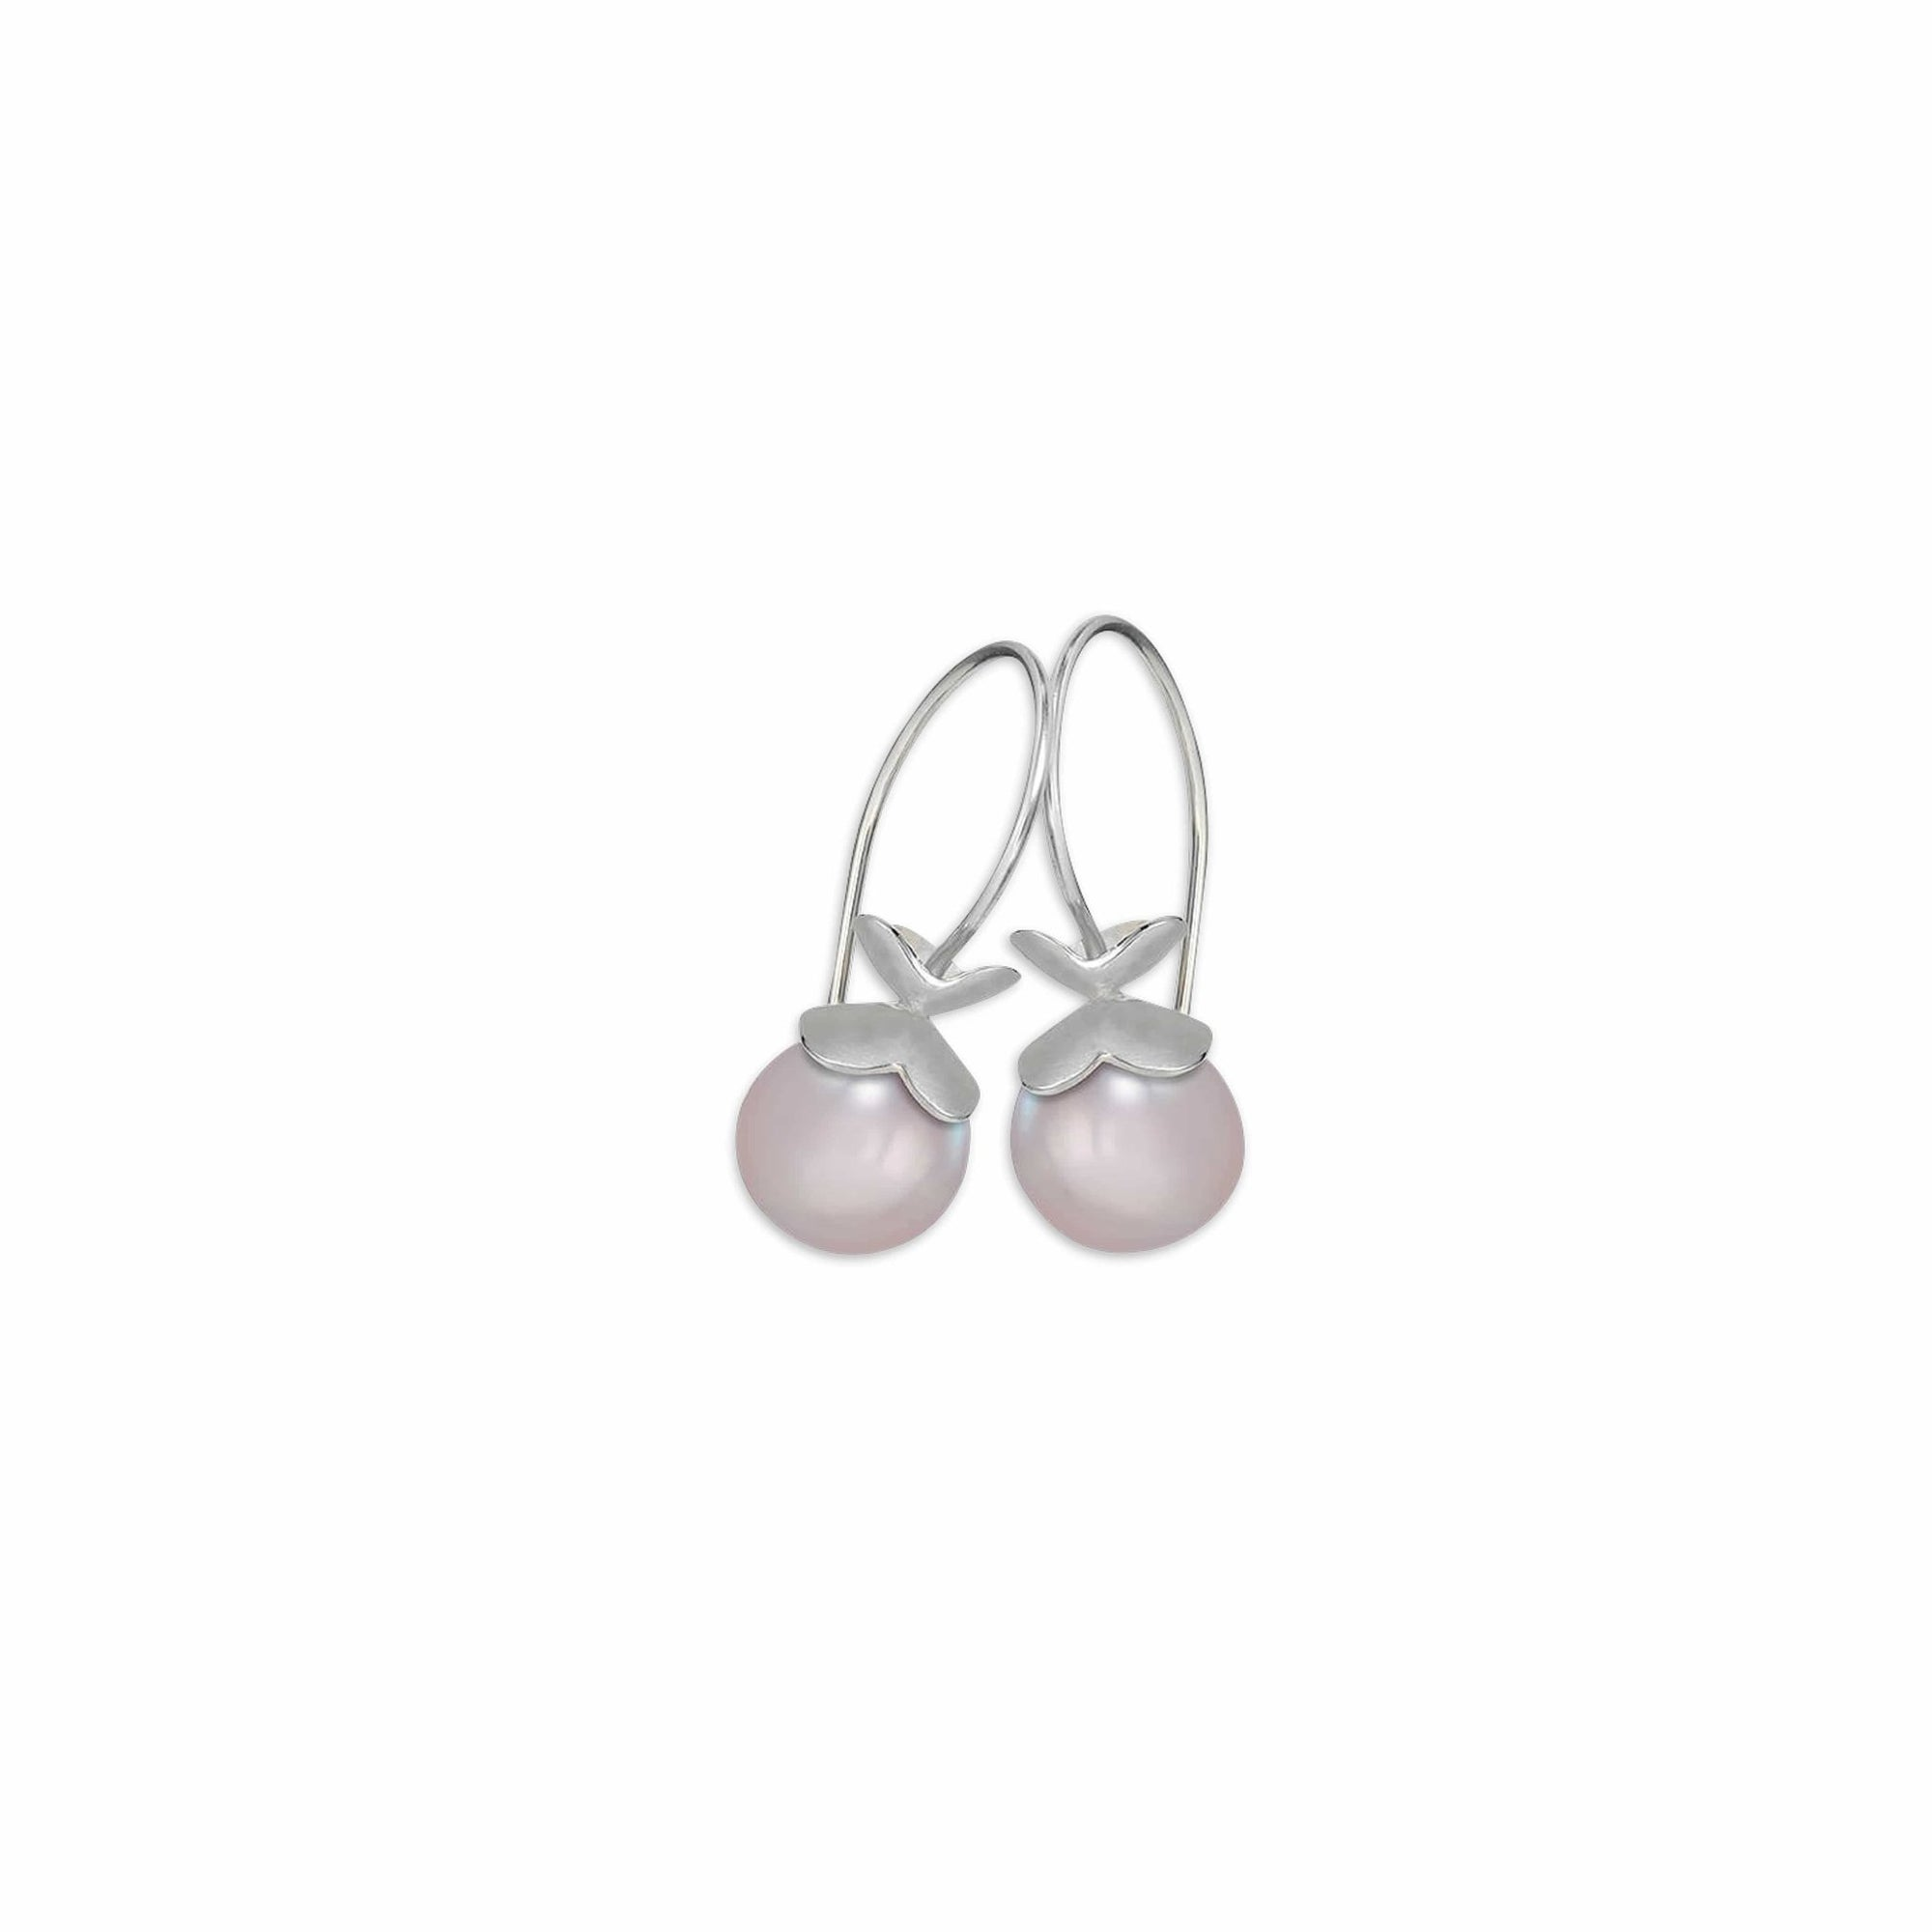 Anna Freshwater Pearl Earrings (Petite) - Ashleigh Branstetter®